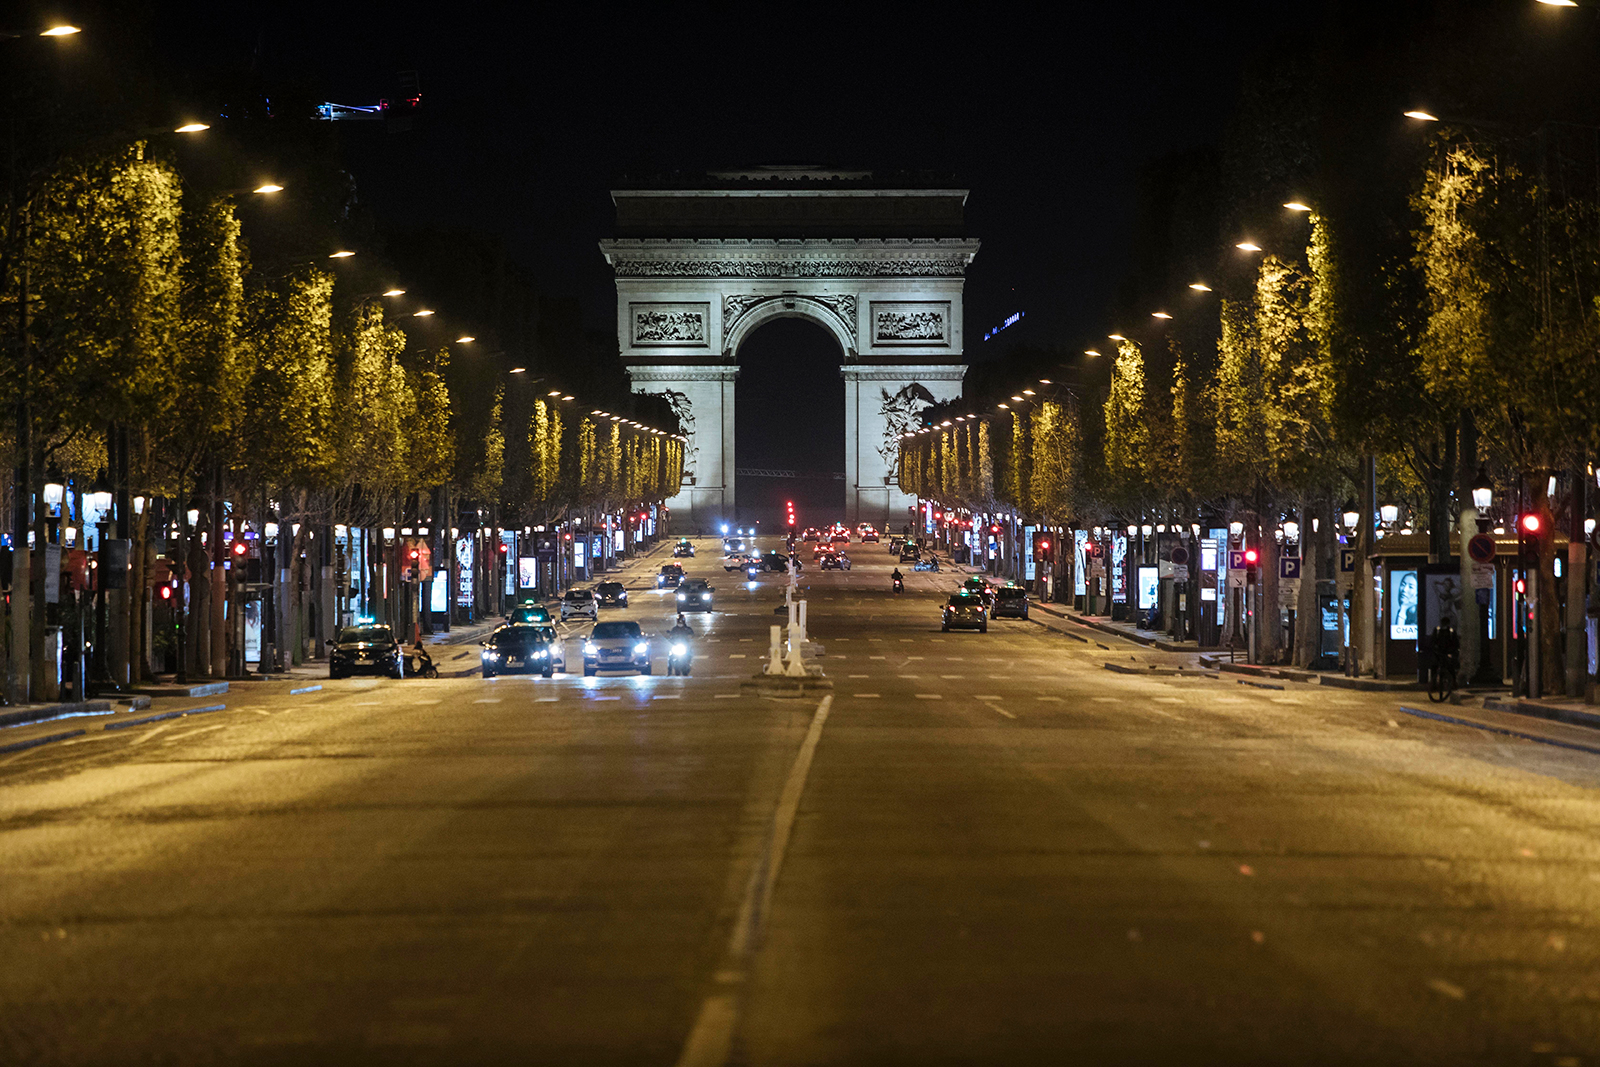 The Champs-Elysees avenue is almost empty during curfew in Paris, on October 17.